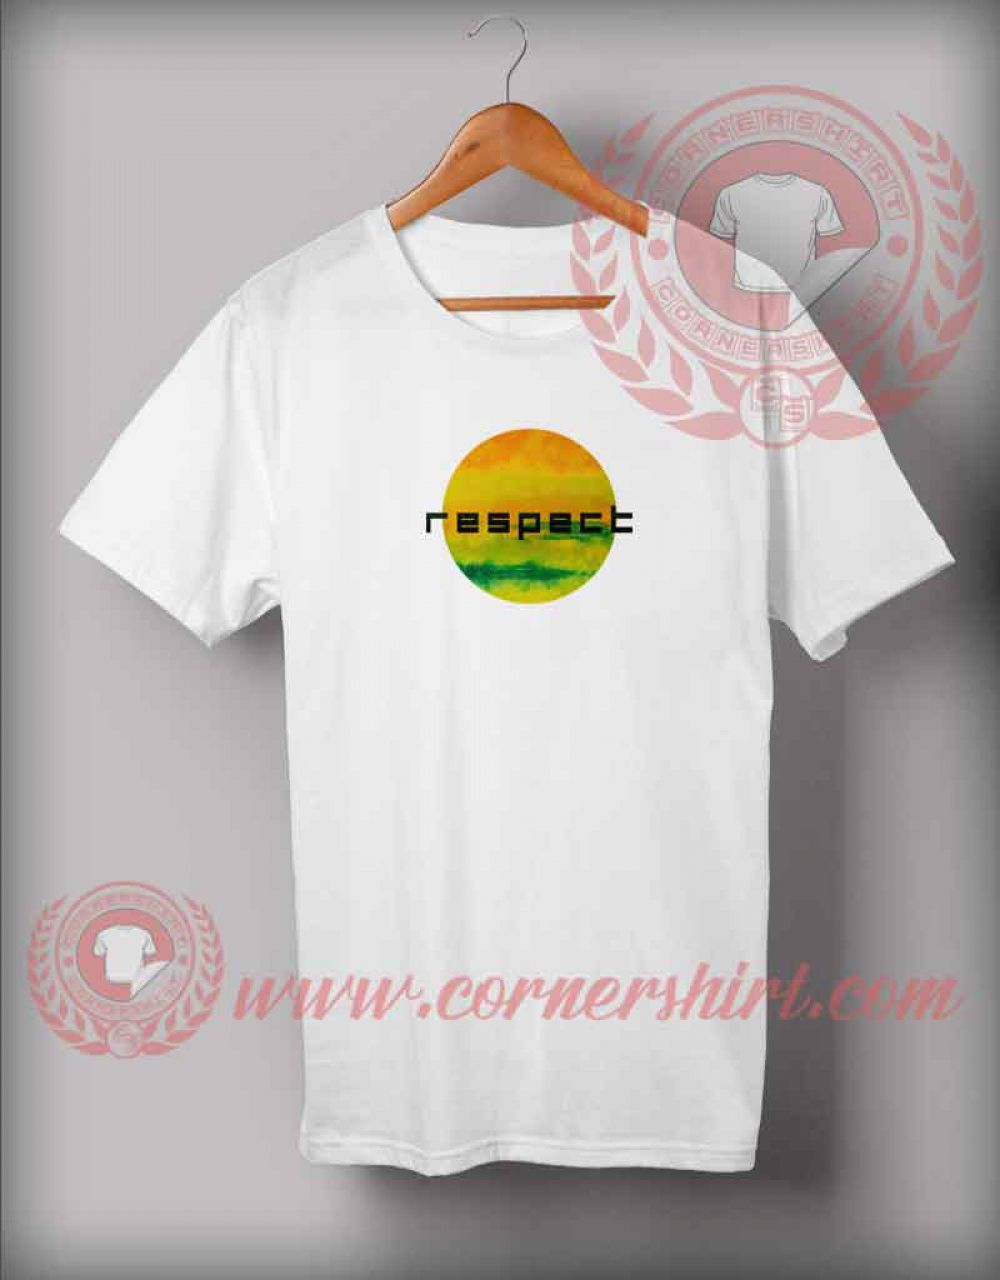 Respect Watercolor T Shirt Price 12 00 Shirt Custom Made